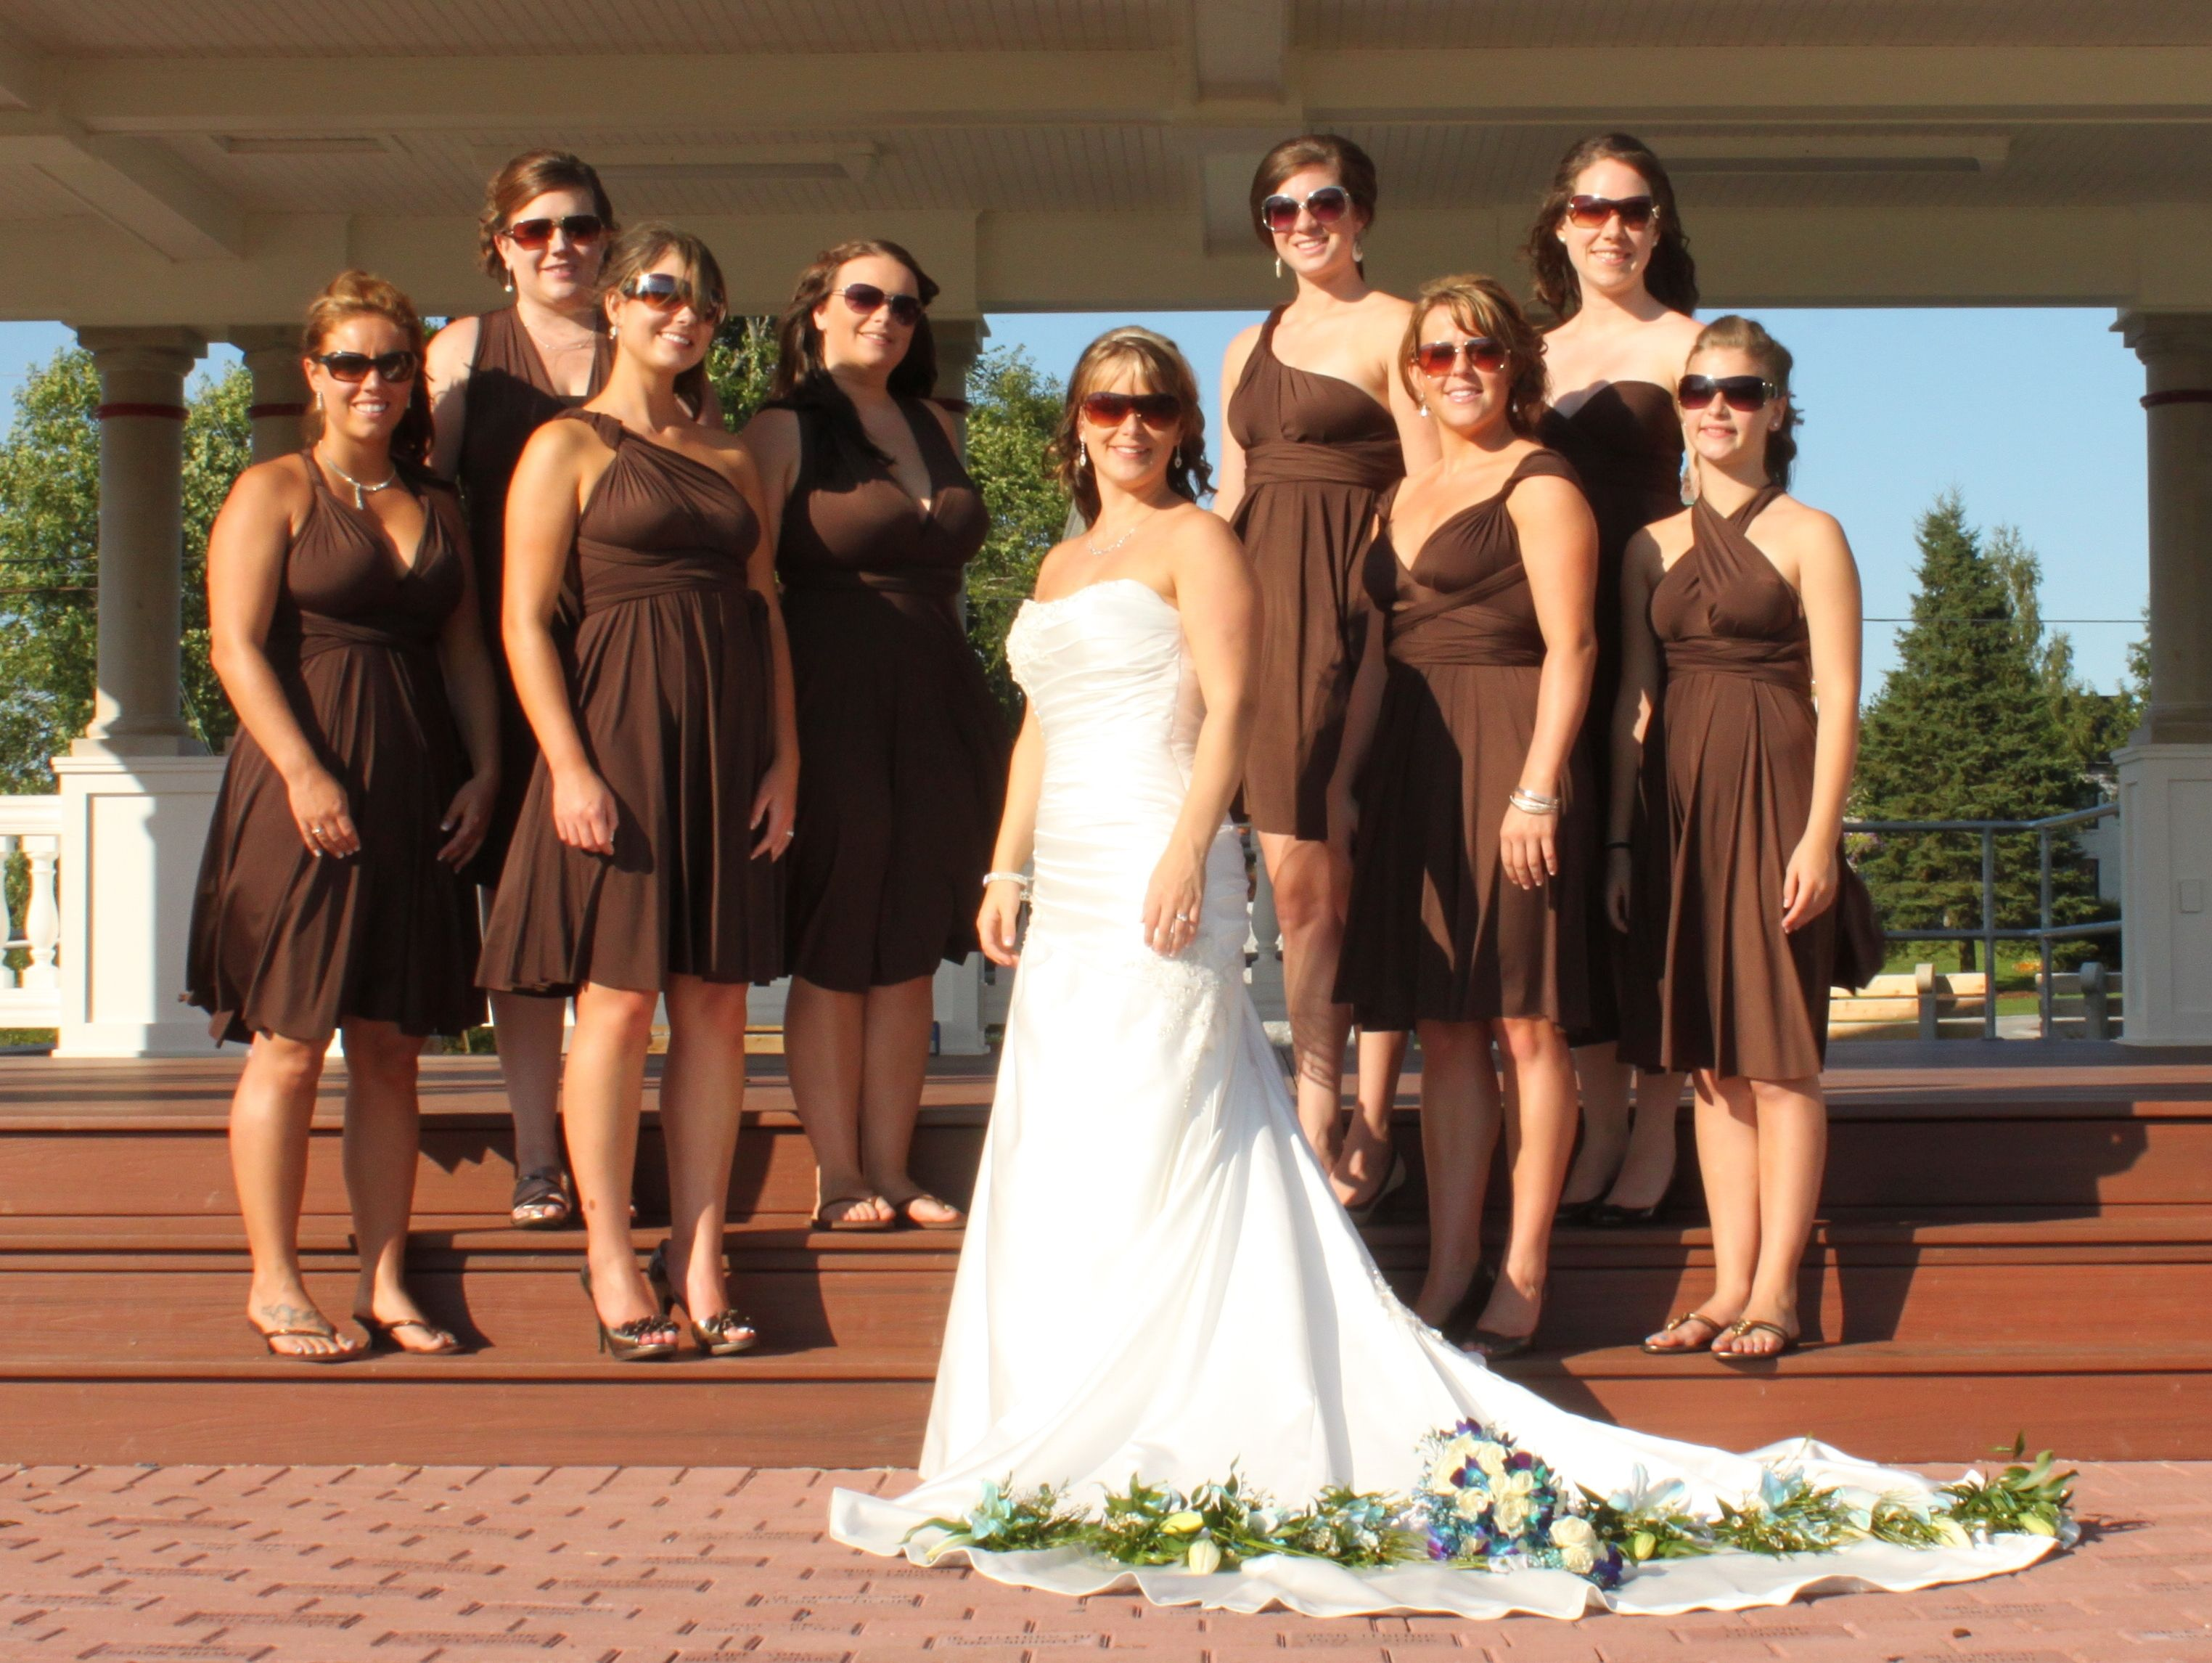 Chocolate Brown Henkaa Loverly Chocolate Brown Dress Brown Dresses Outfit Brown Wedding Themes